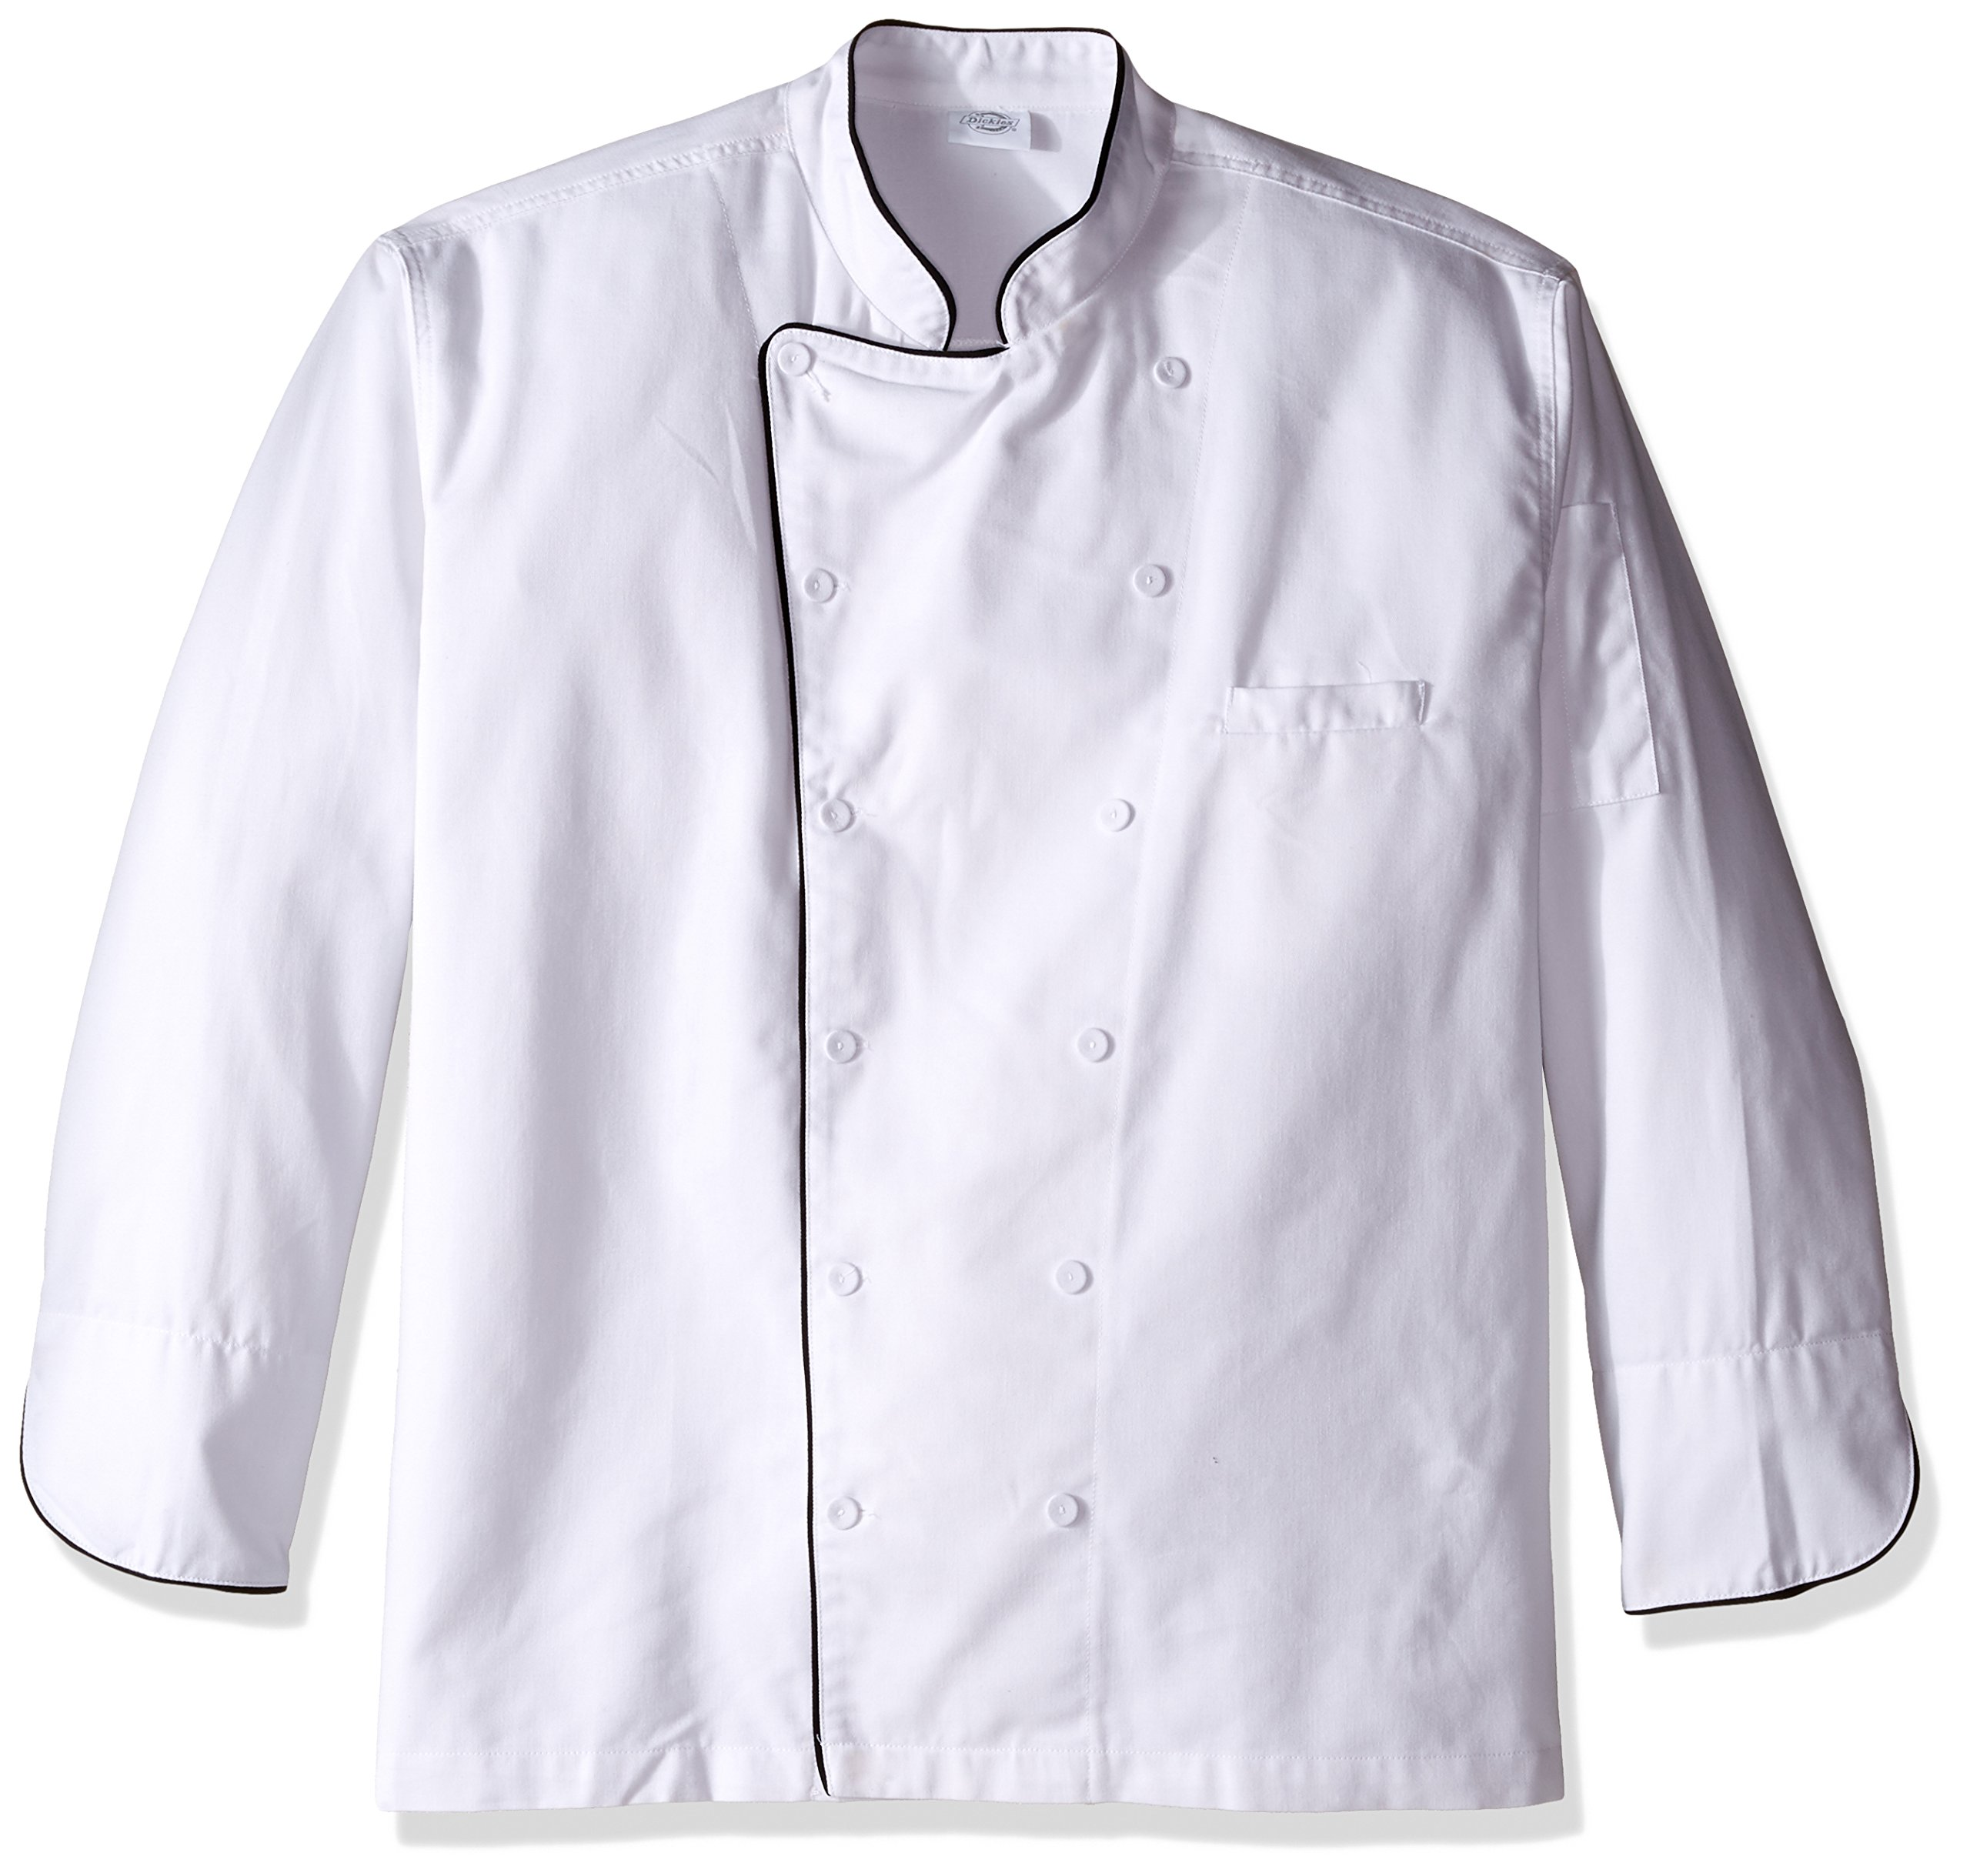 Dickies Chef Executive Coat with Stain Repellent with Piping, White/Black, XXX-Large by Dickies (Image #1)